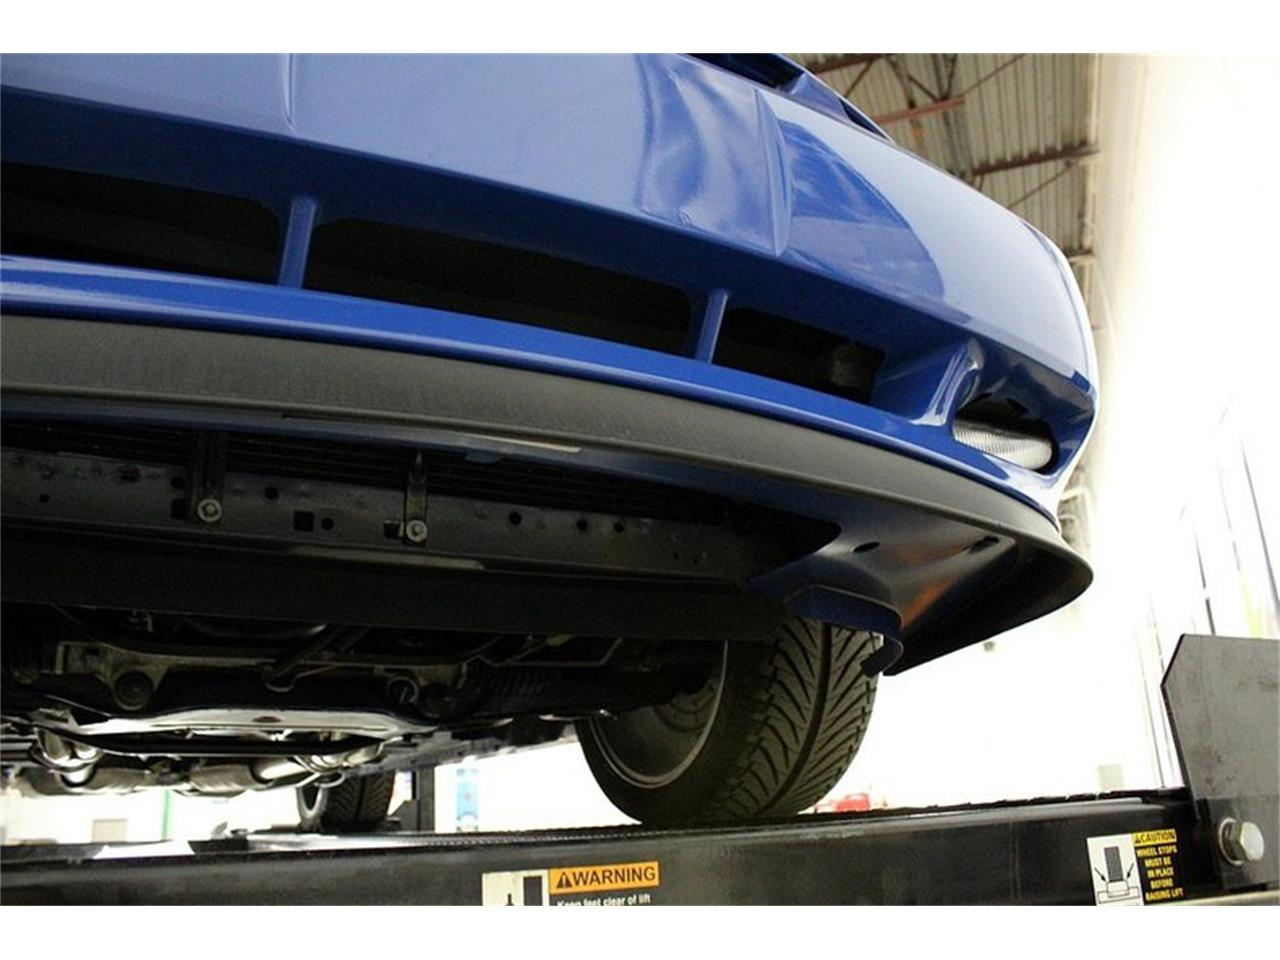 2003 Ford Mustang for sale in Kentwood, MI – photo 86